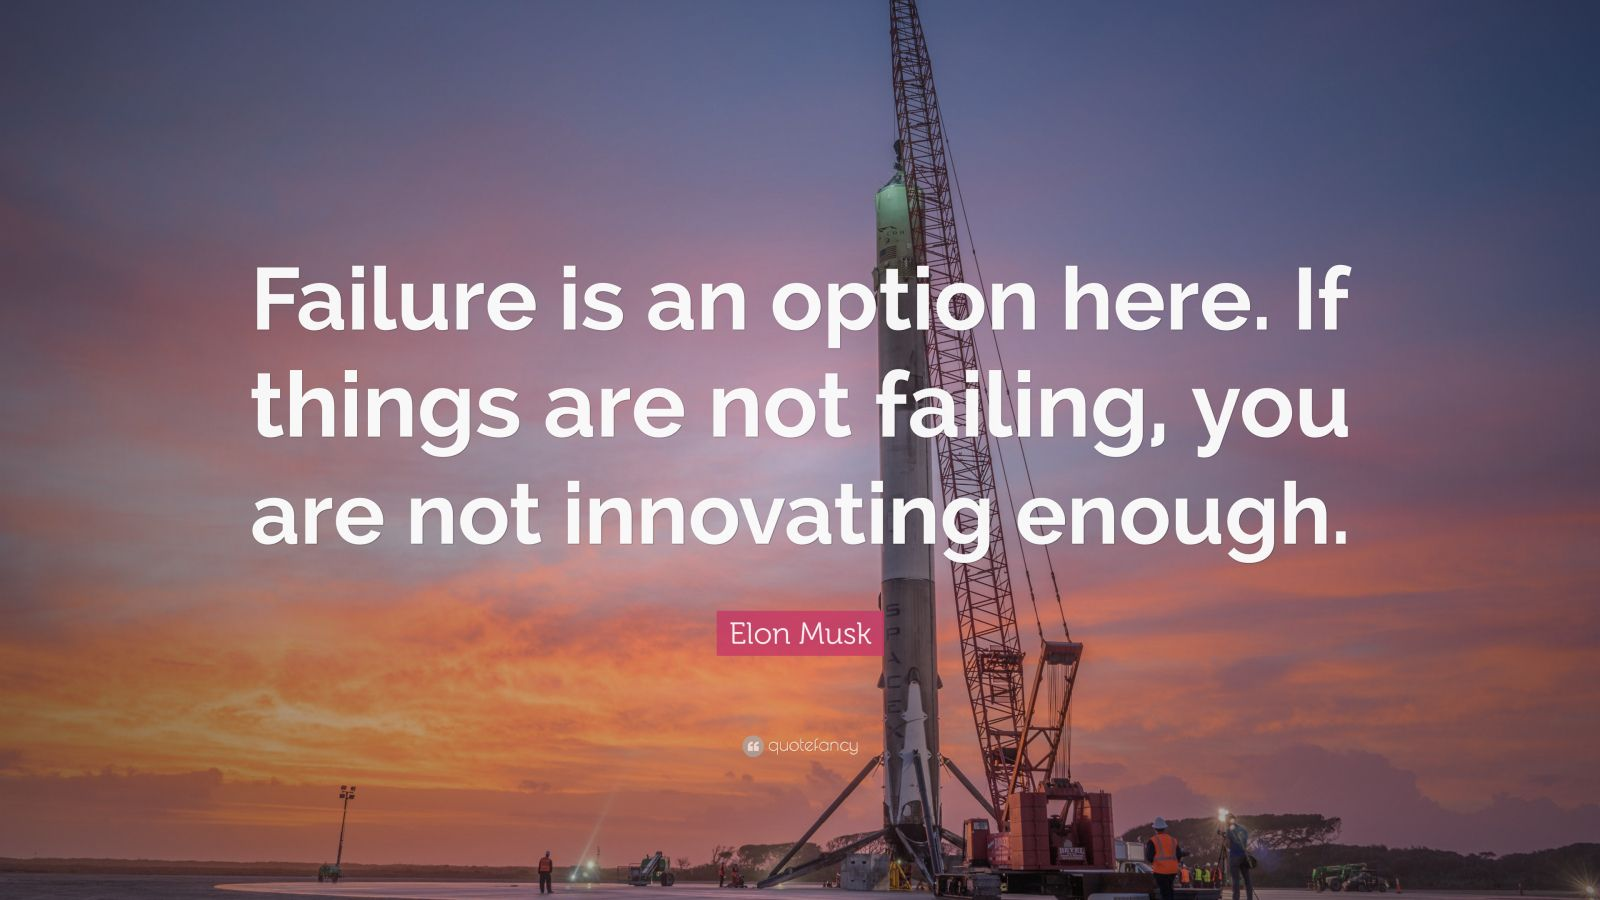 elon musk quote   u201cfailure is an option here  if things are